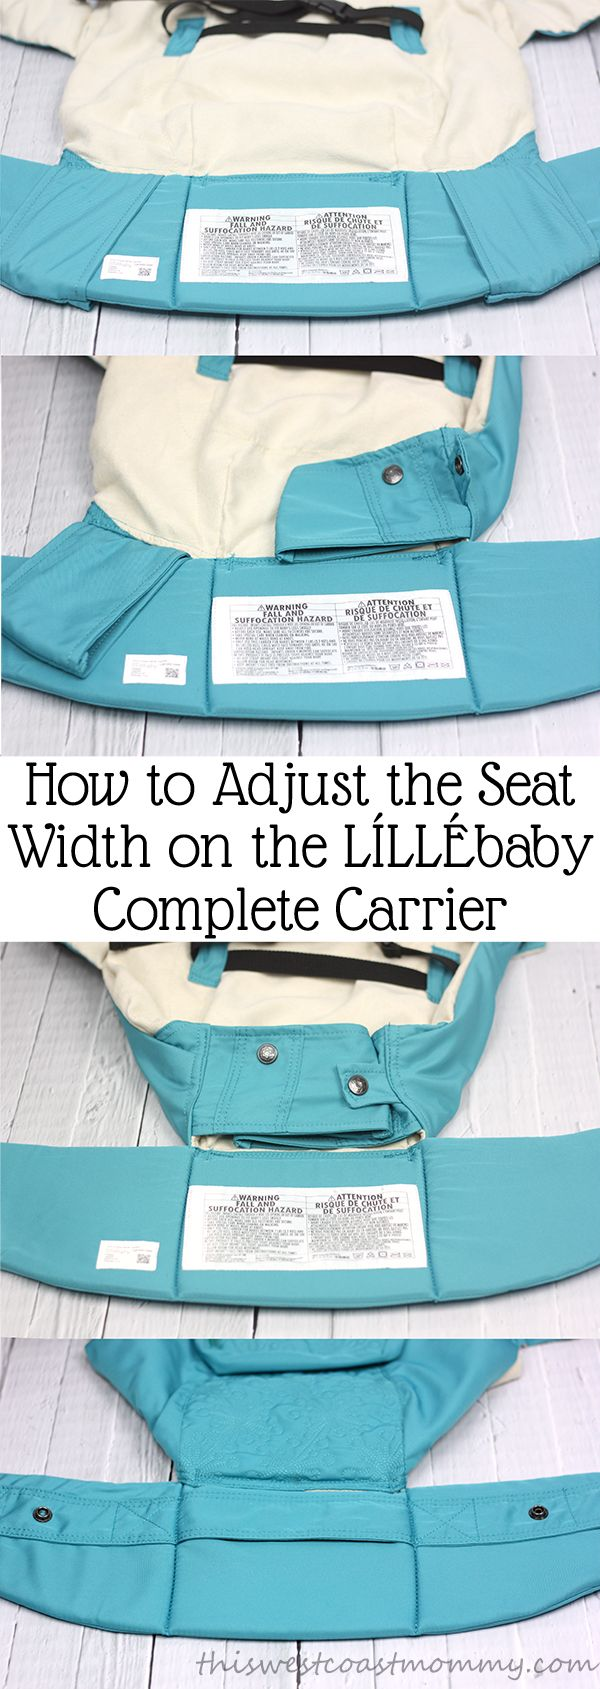 How to adjust the seat width on the LILLEbaby Complete Carrier